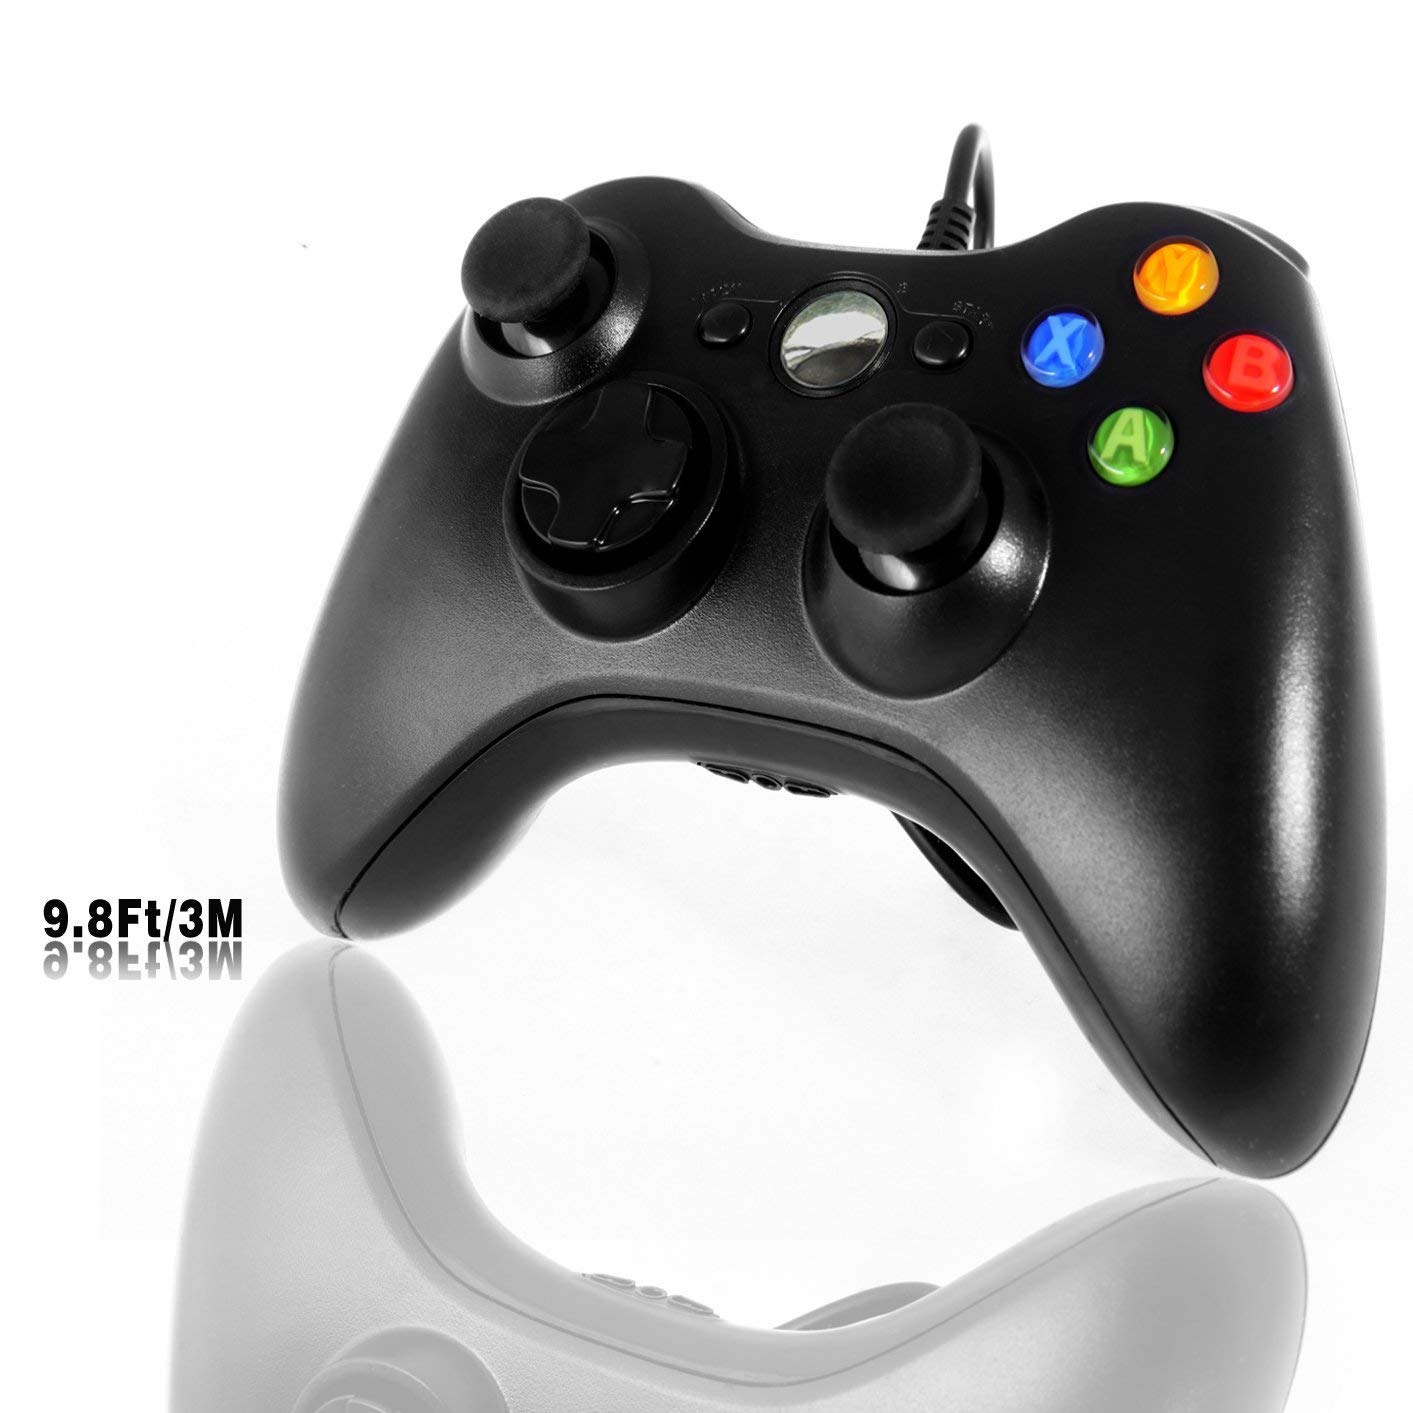 Xbox 360 Game Controller, WEIE USB Wired Gamepad with Cable for Xbox 360, Xbox 360 Slim, Windows PC (Windows XP, Vista, 7, 8, 8.1, 10)